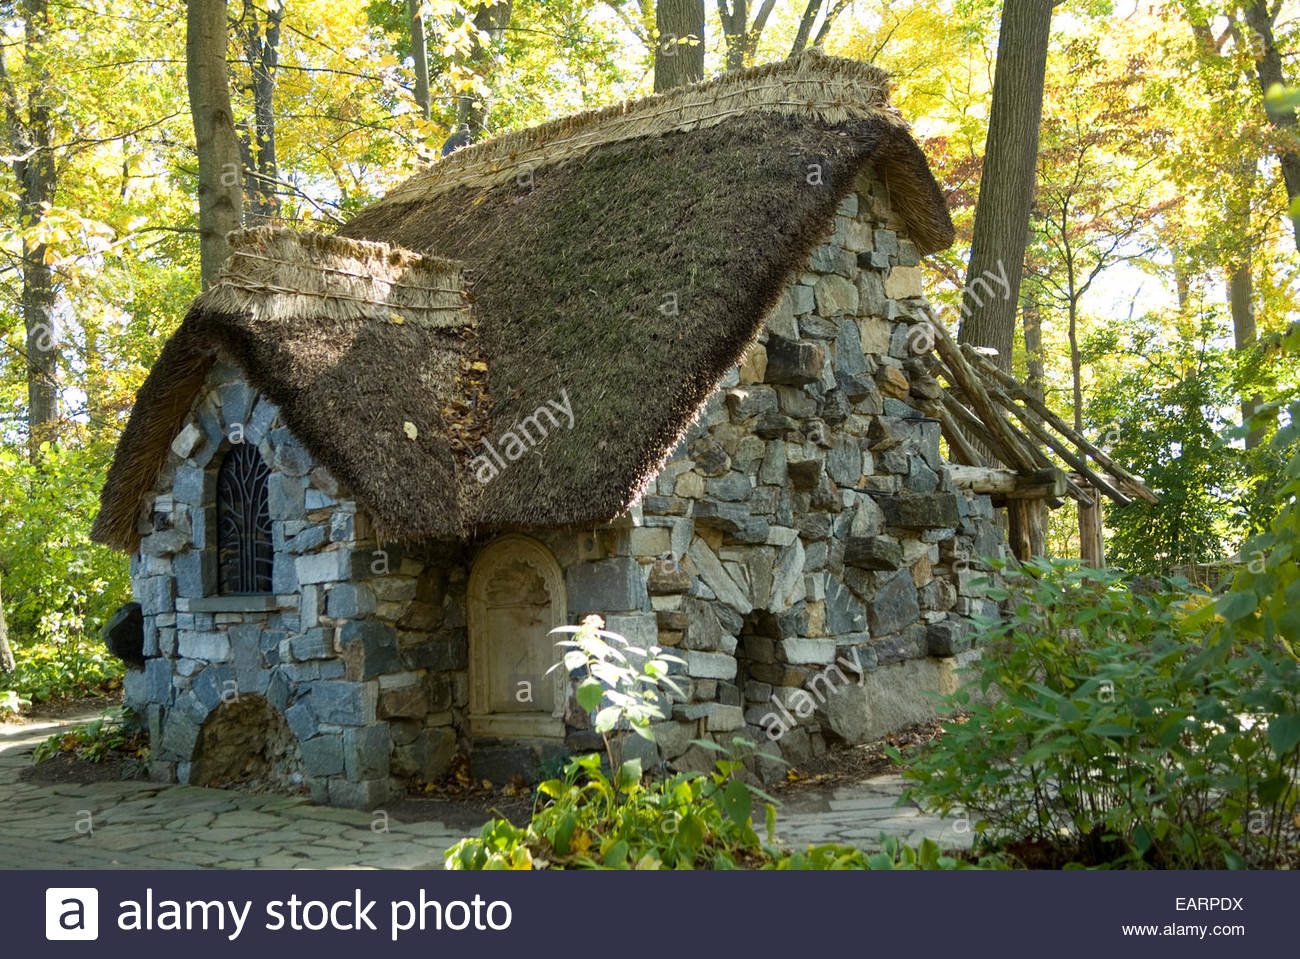 The Faerie Cottage in the Enchanted Woods in the Winterthur Garden. - Stock Image